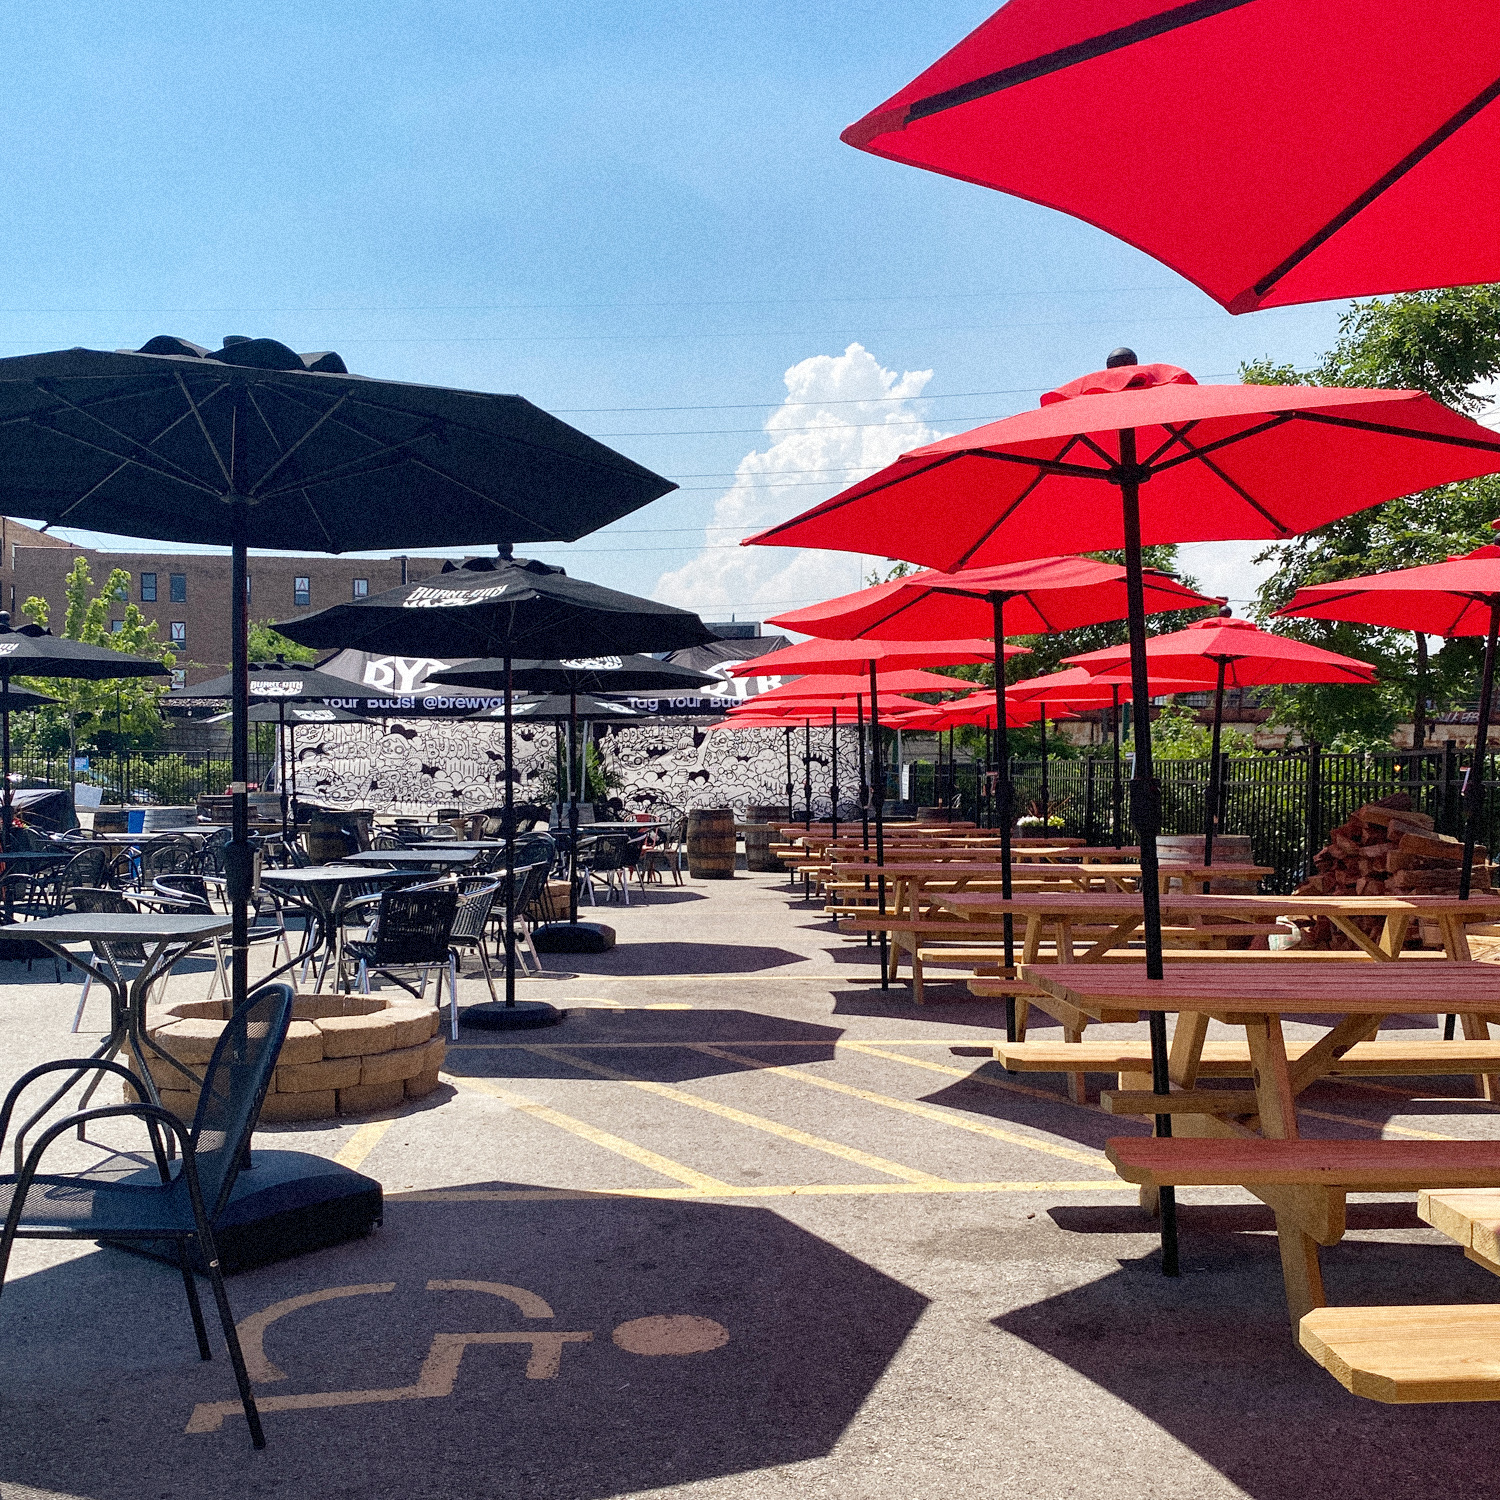 DBY patio with black and red umbrellas